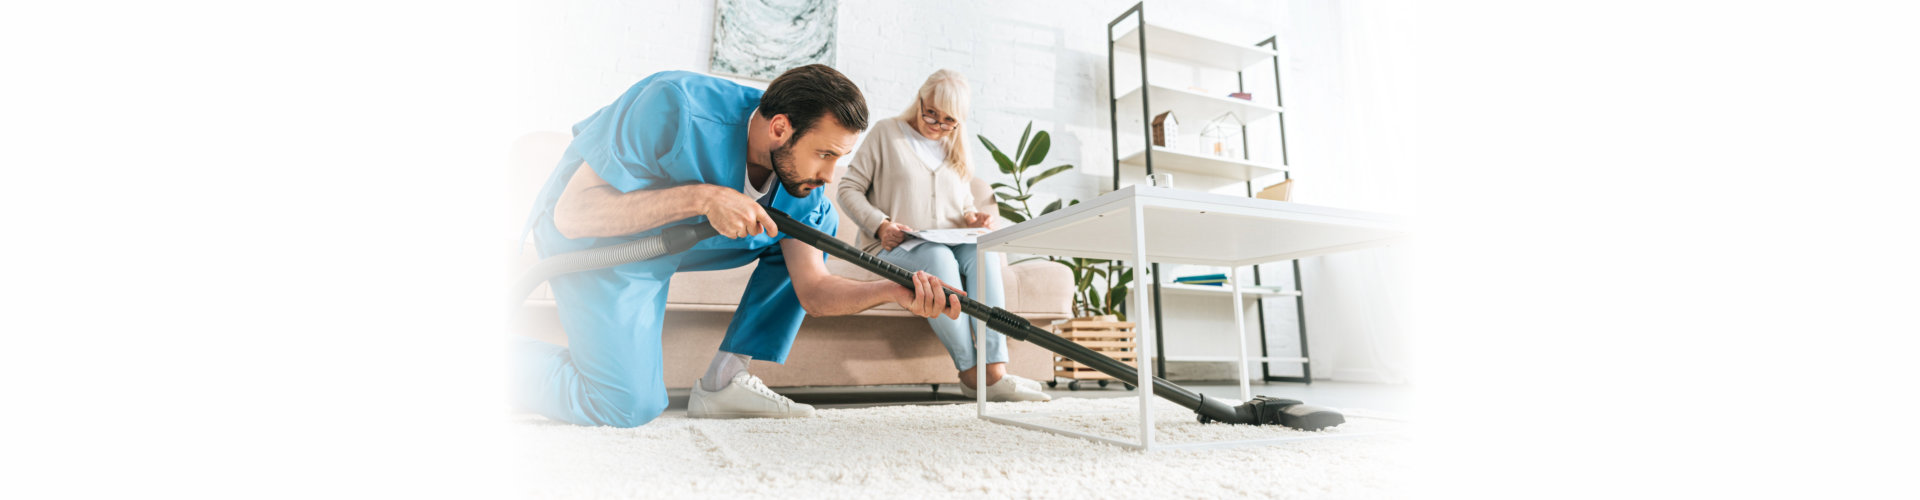 young man using vacuum cleaner while senior woman sitting on sofa